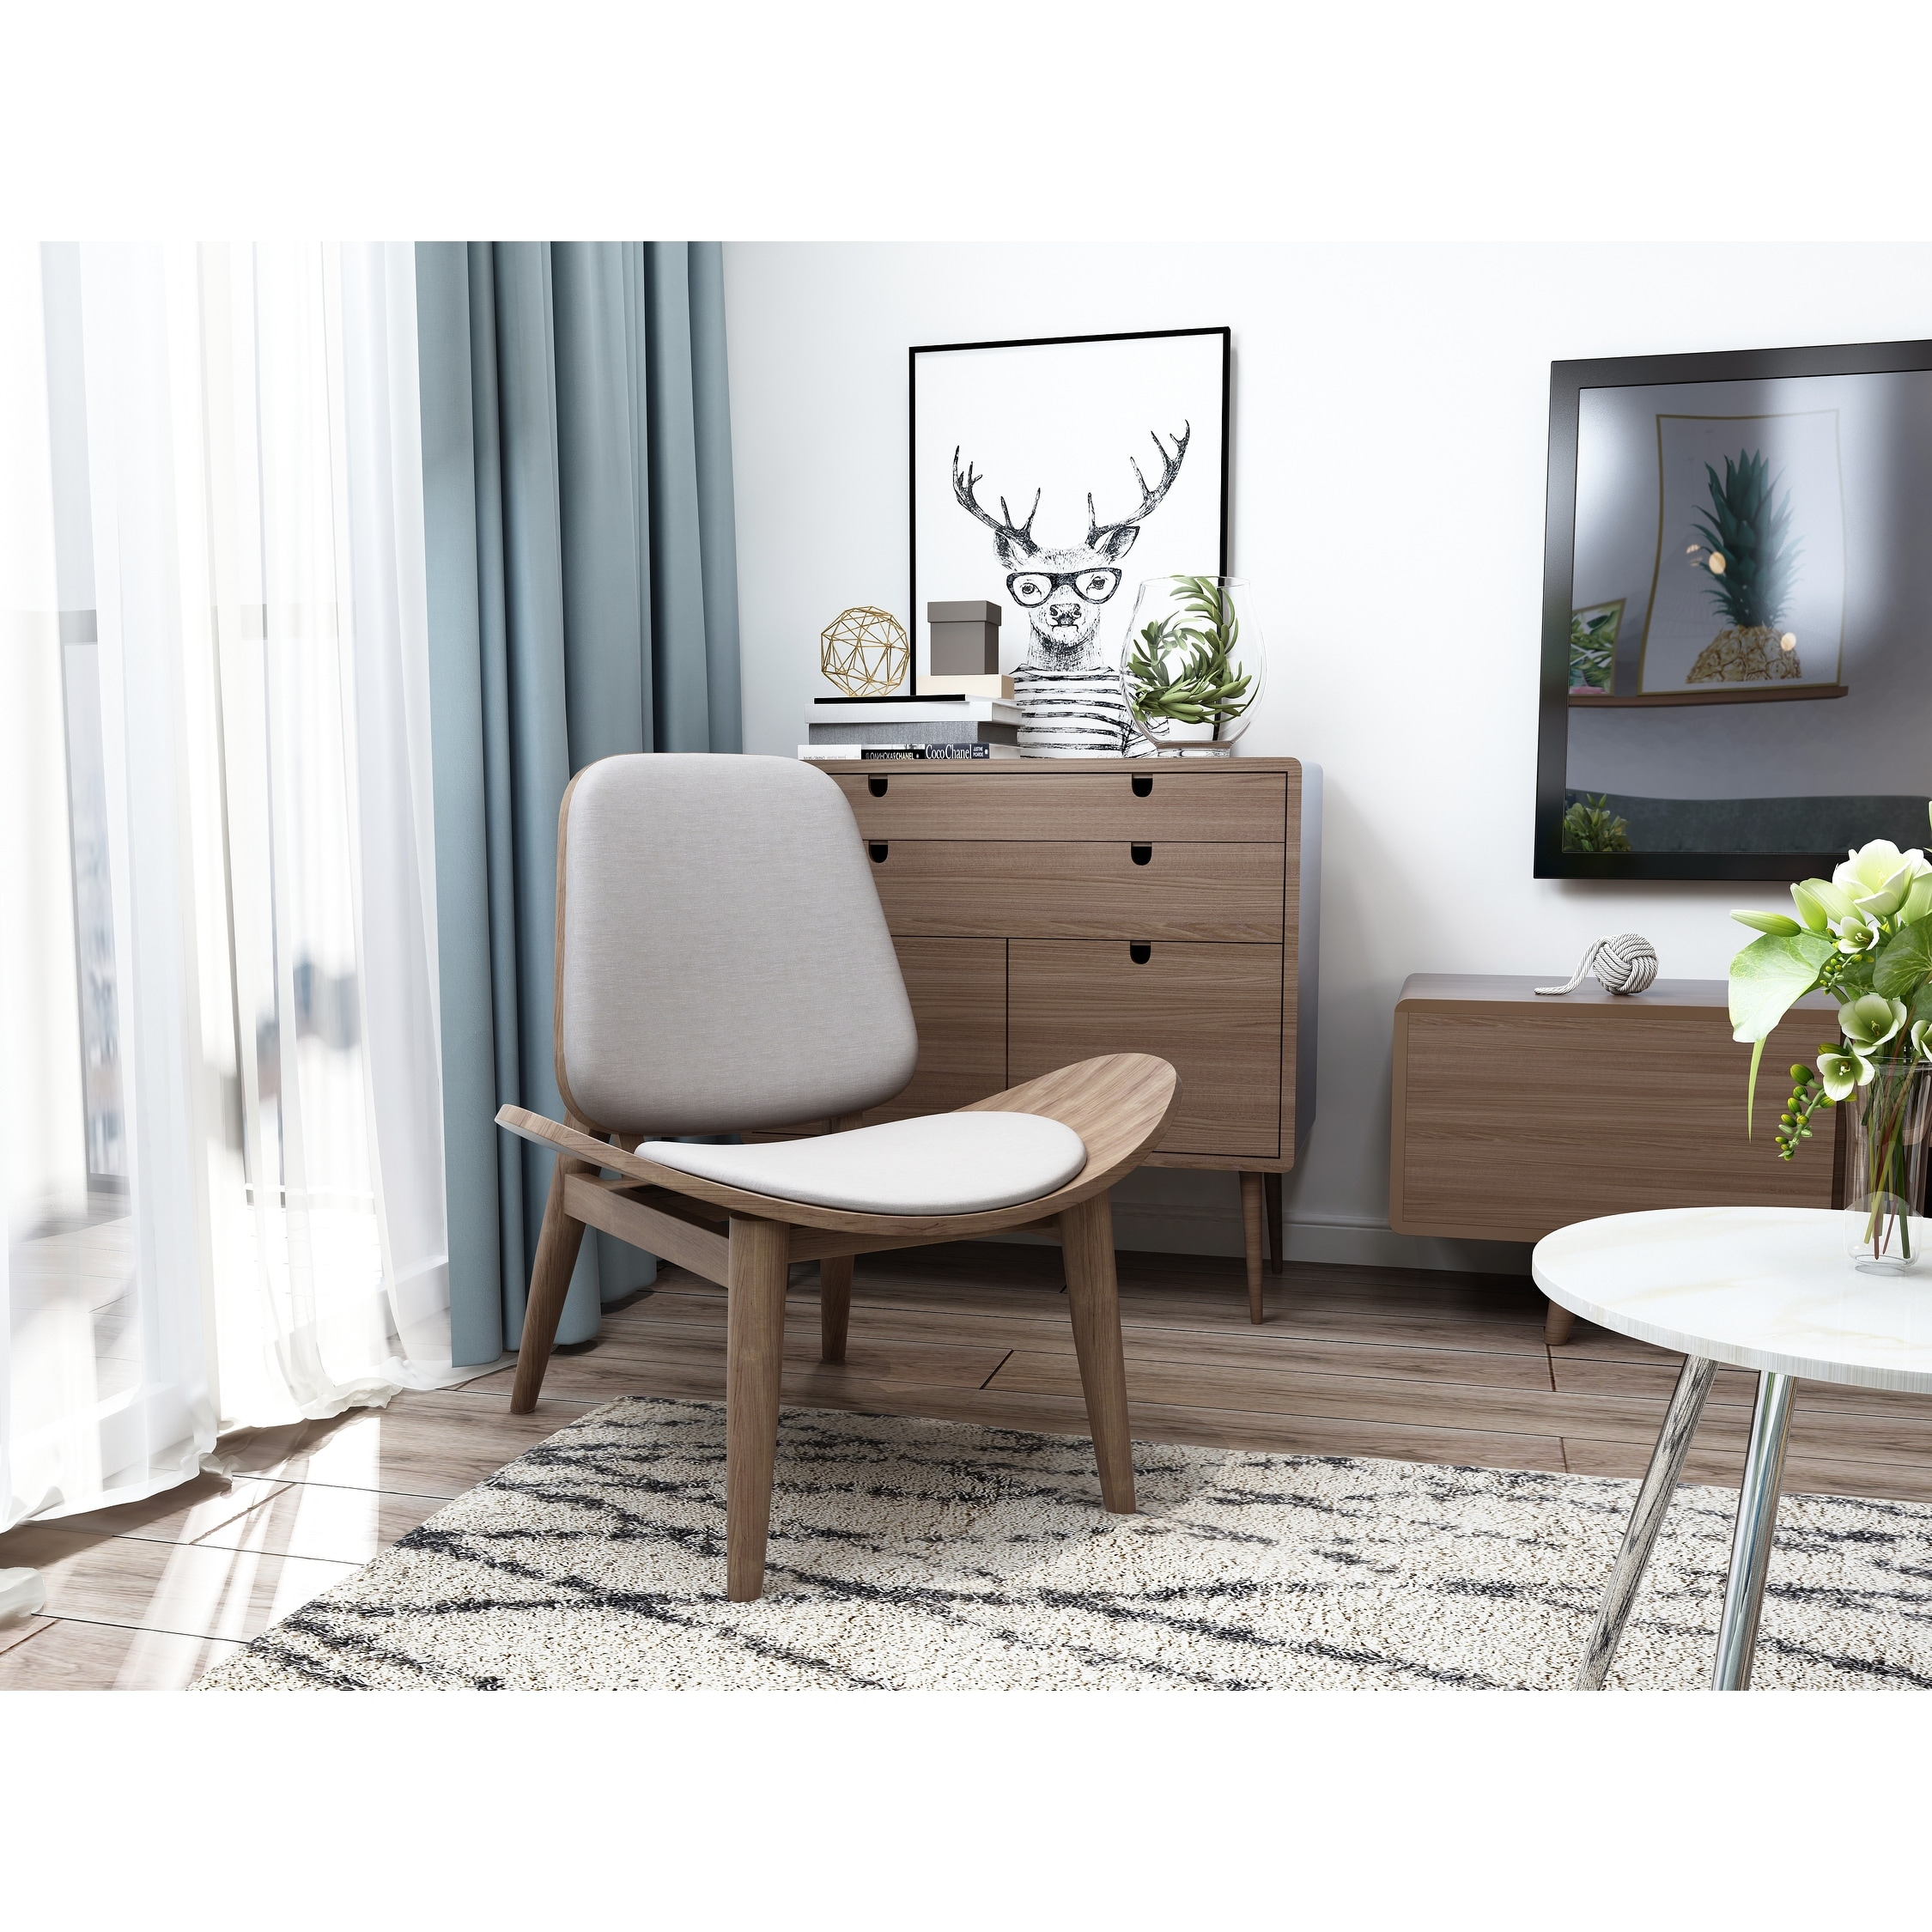 2xhome Designer Plywood Dark Wood Low Lounge Shell Chair Living Room Accent Chair Walnut Kitchen Bedroom Comfort Office Work